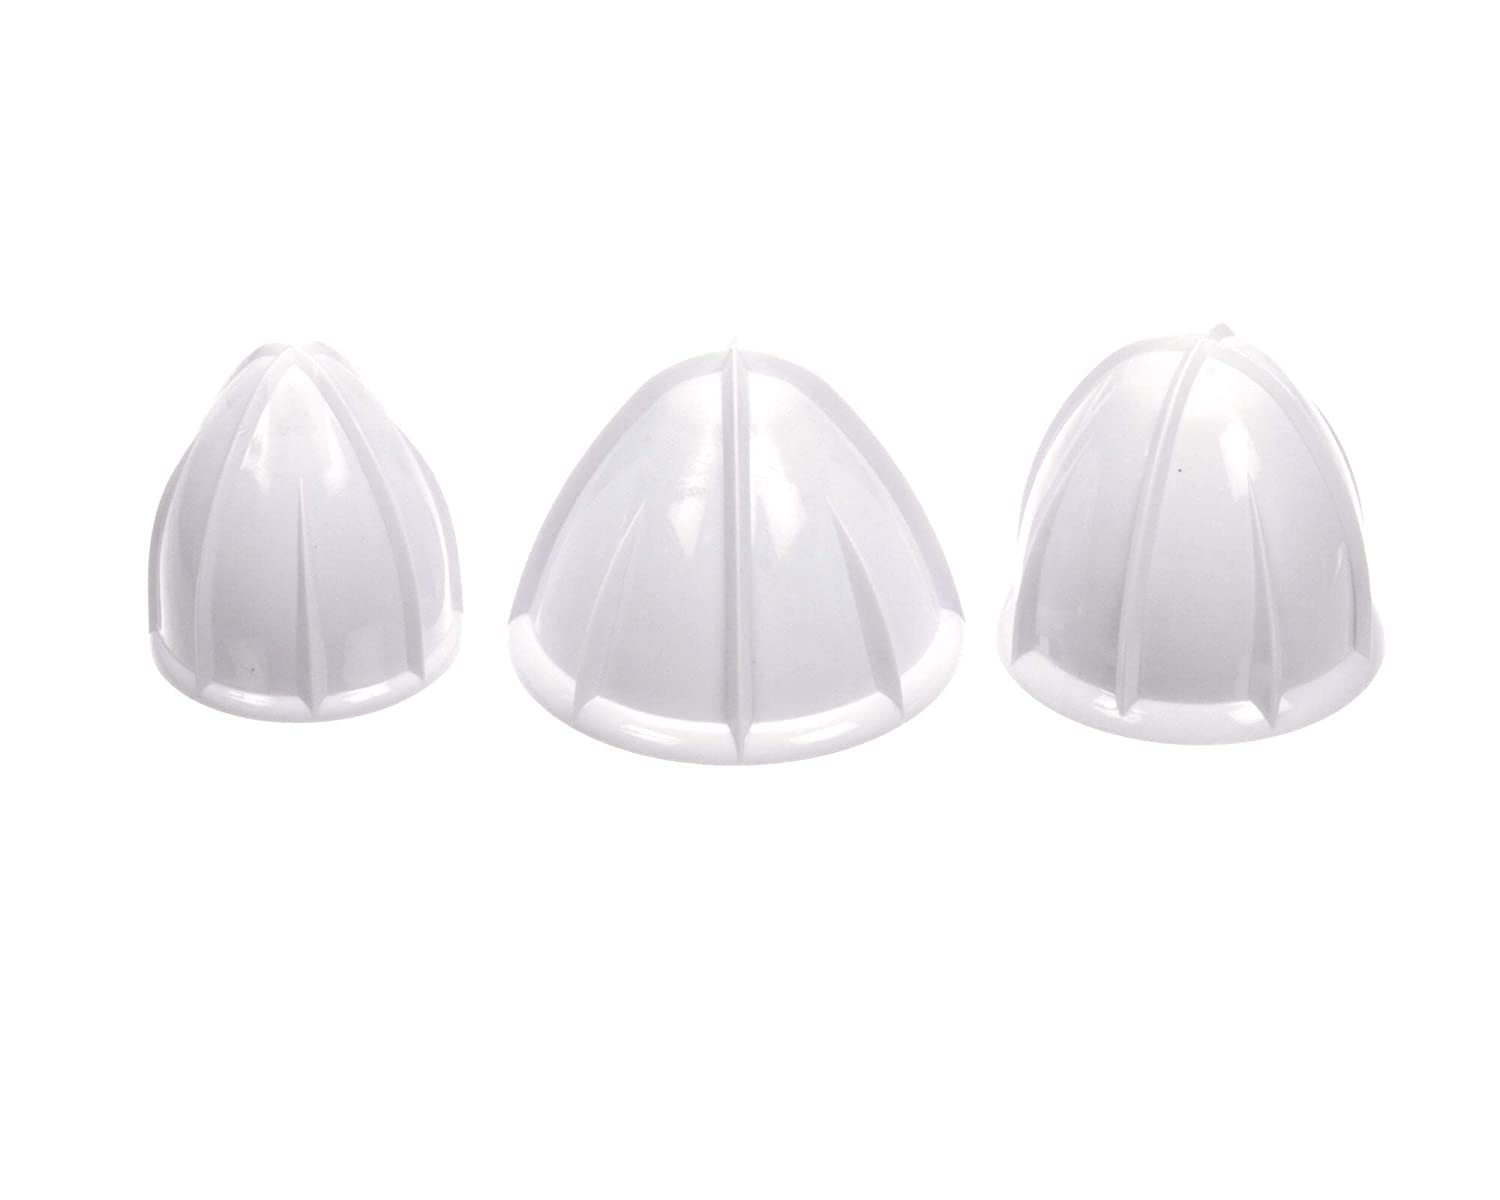 Bar Maid JUC-Cone-Set Juicer Cone Set-1 Each Small